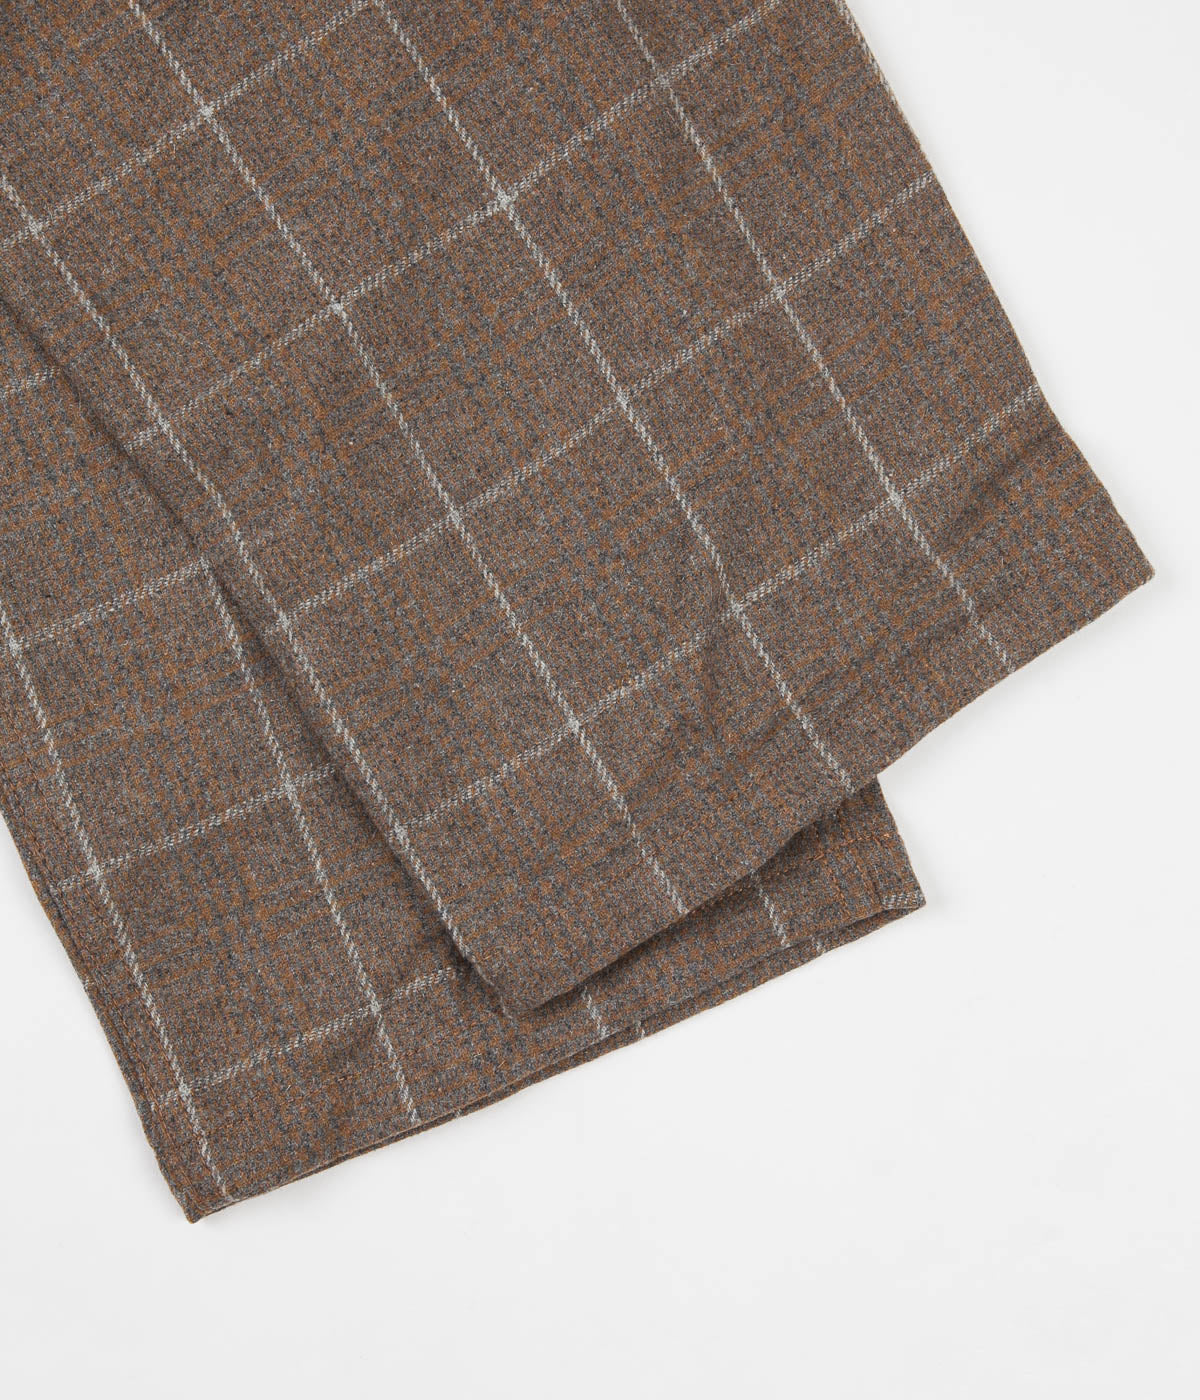 Gramicci Wool Blend Gramicci Pants - Glen Check Camel